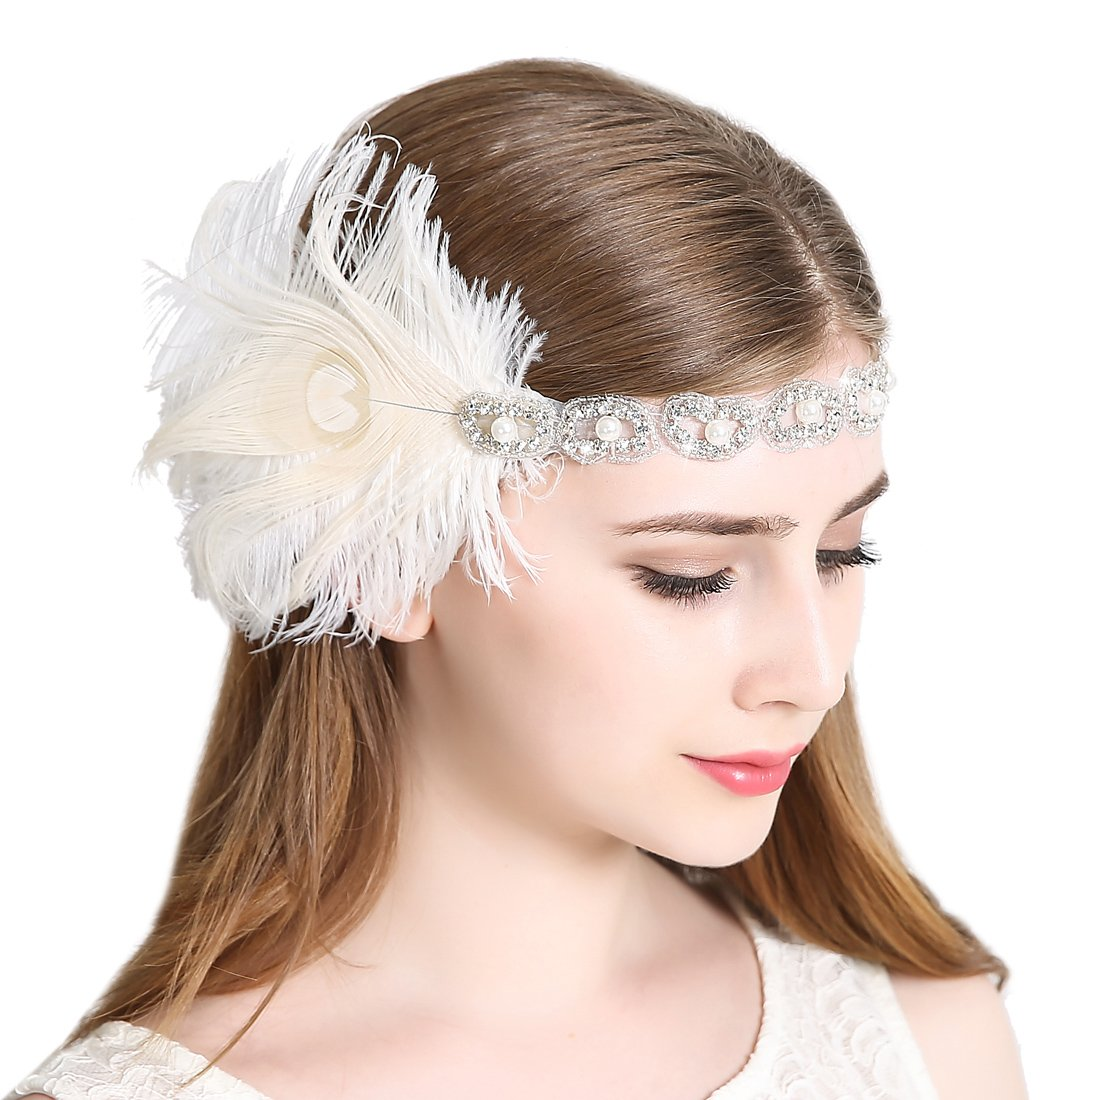 Women's Peacock 1920s Flapper Headband Art Deco Roaring 20s Gatsby Inspired Headpieces for Wedding Party